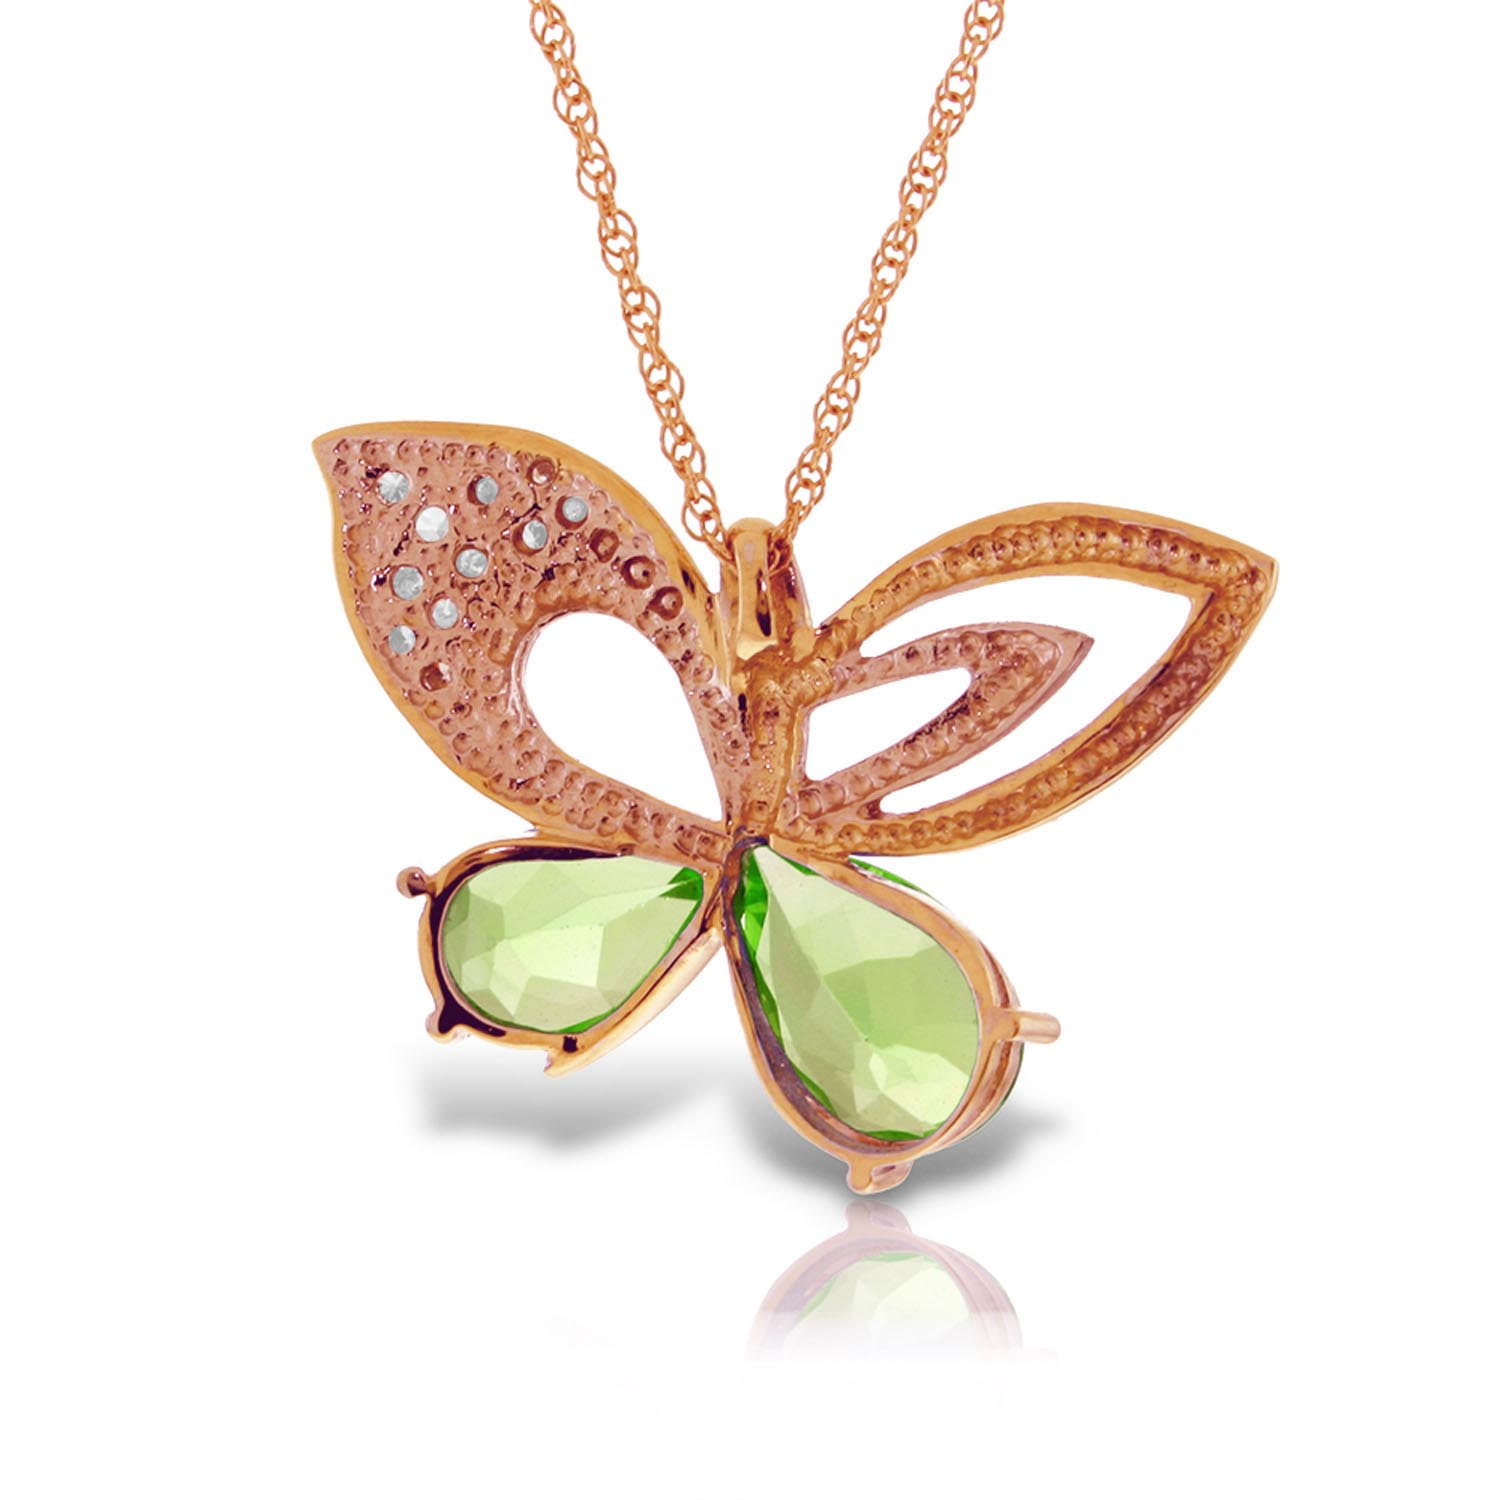 Peridot and Diamond Butterfly Pendant Necklace 3.6ctw in 14K Rose Gold